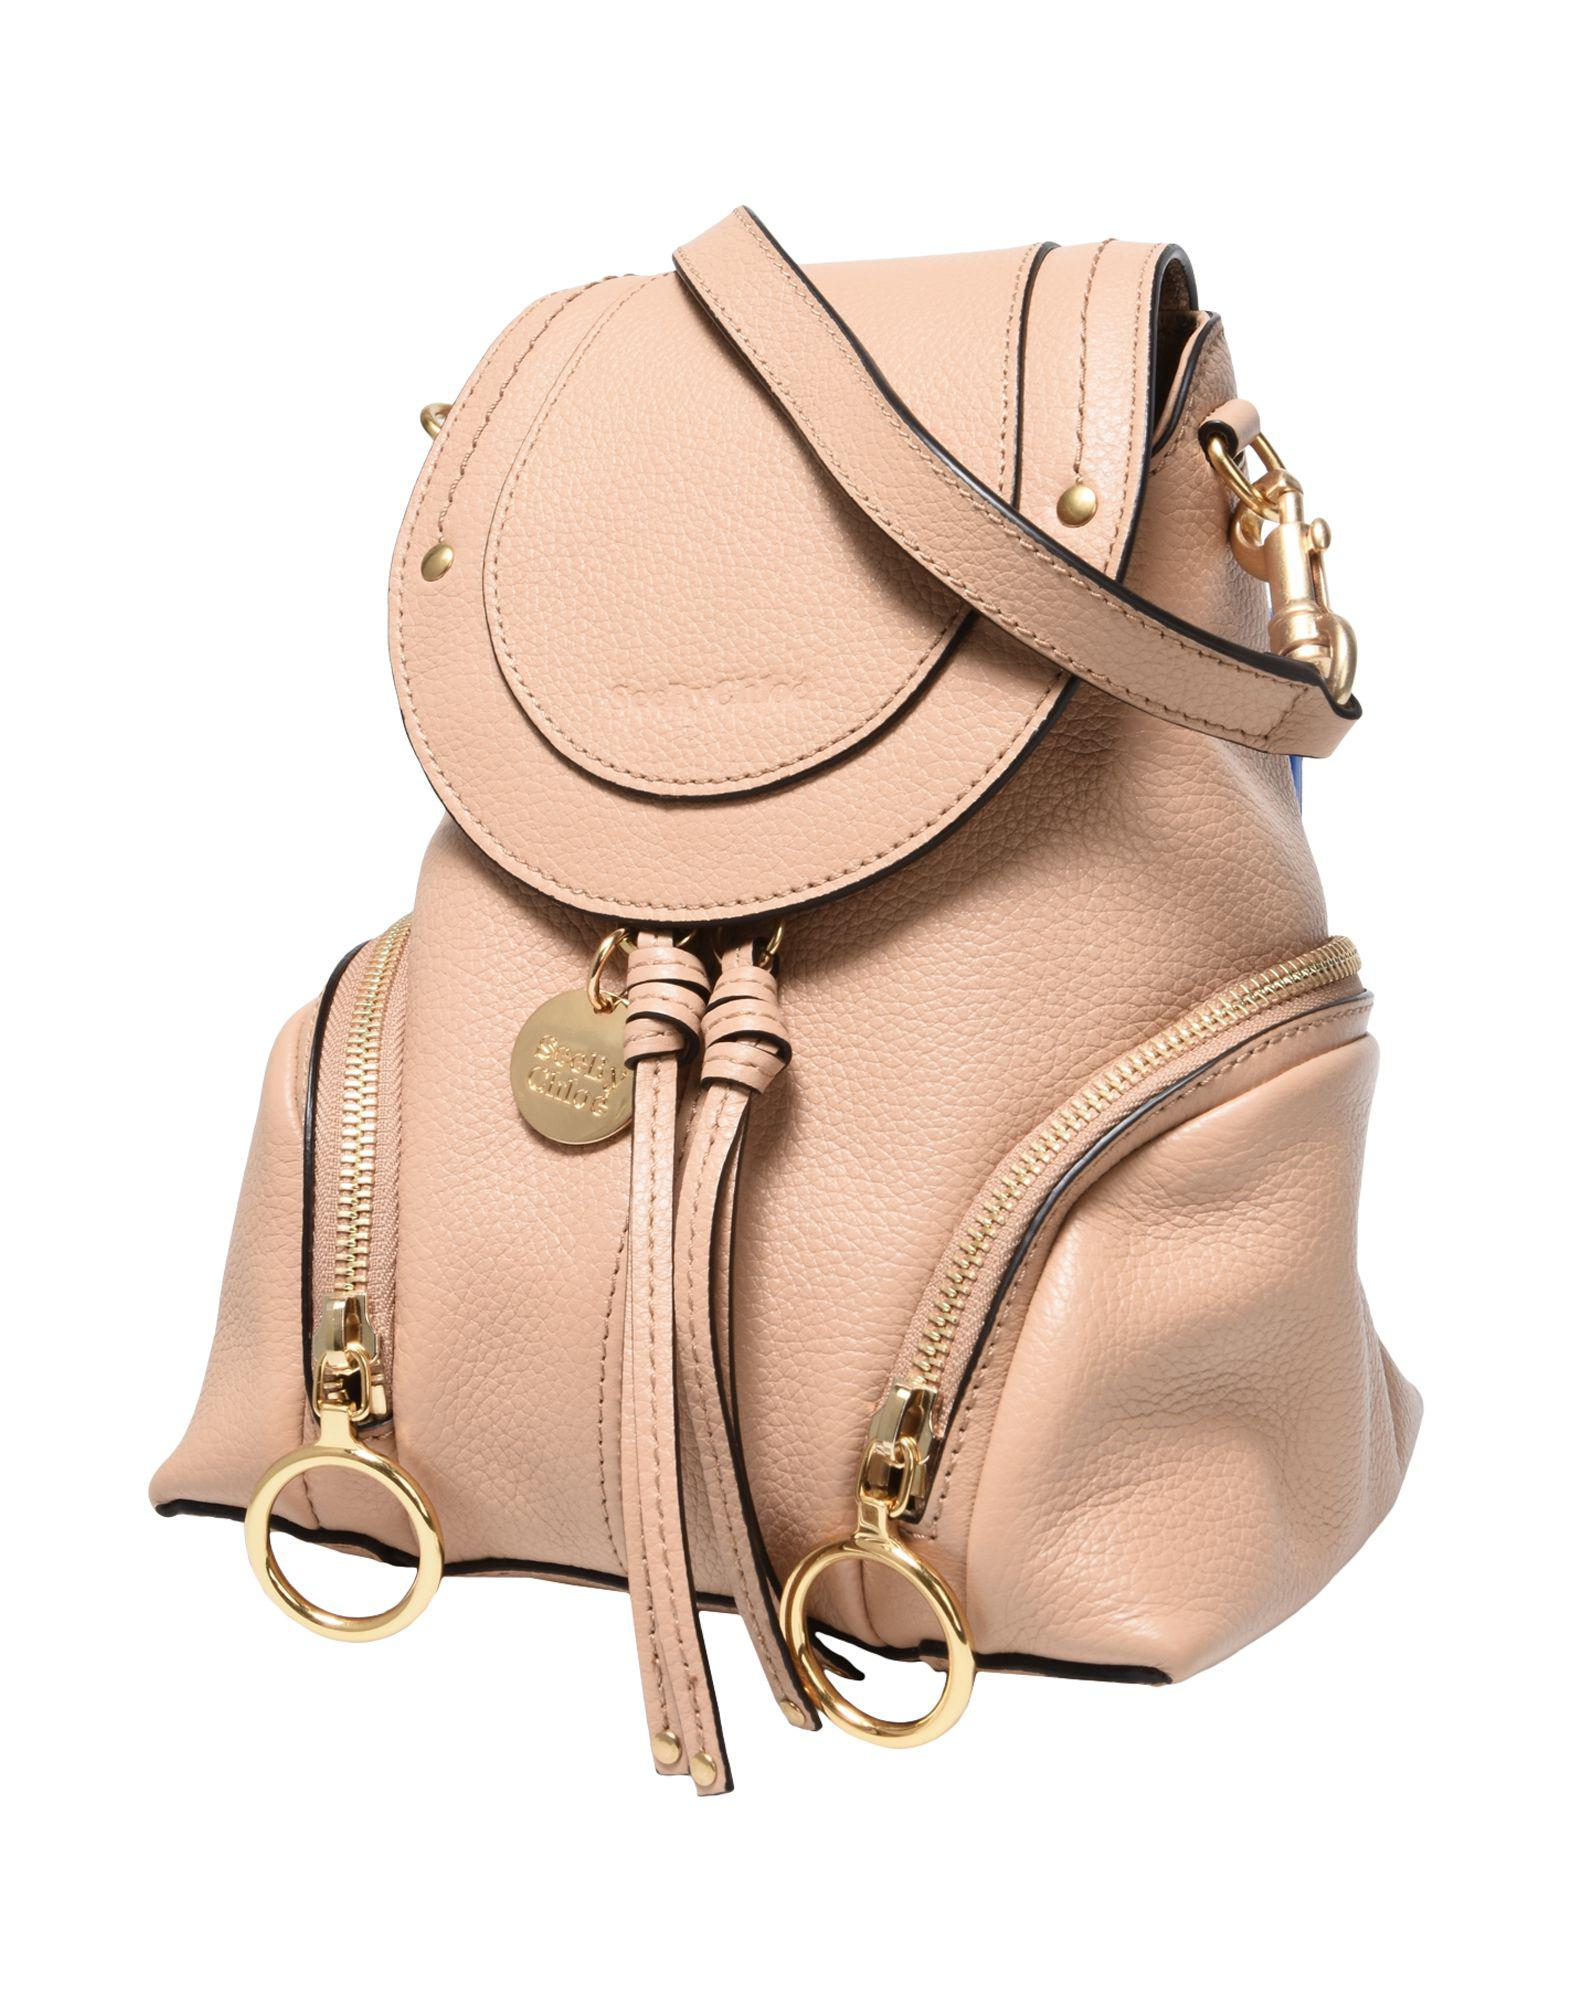 Lyst - See By Chloé Backpacks   Bum Bags in Natural 7229e6bf34adc